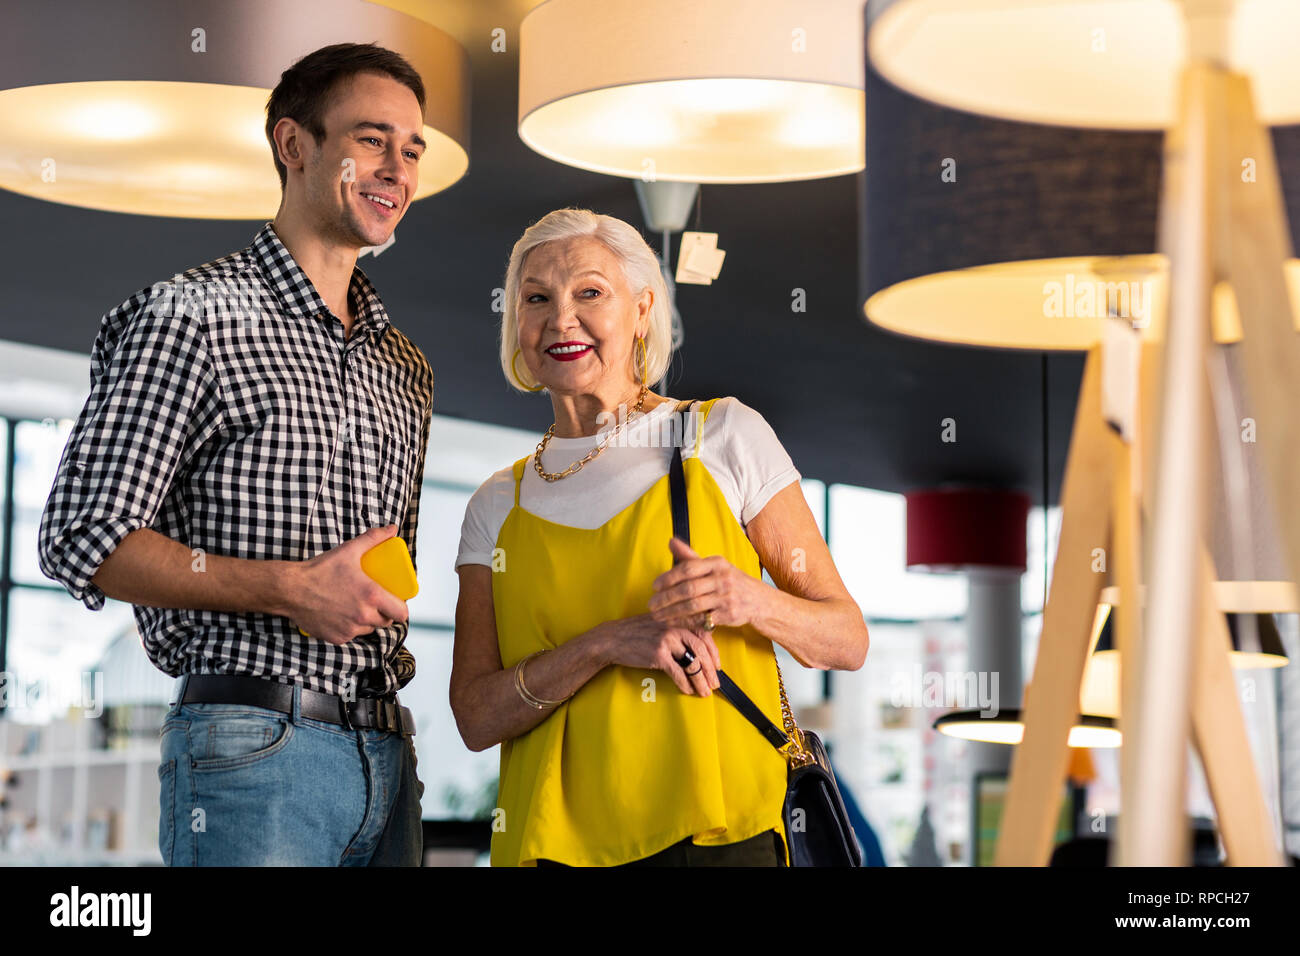 Beaming gorgeous senior lady discussing lamps buying with younger beau - Stock Image